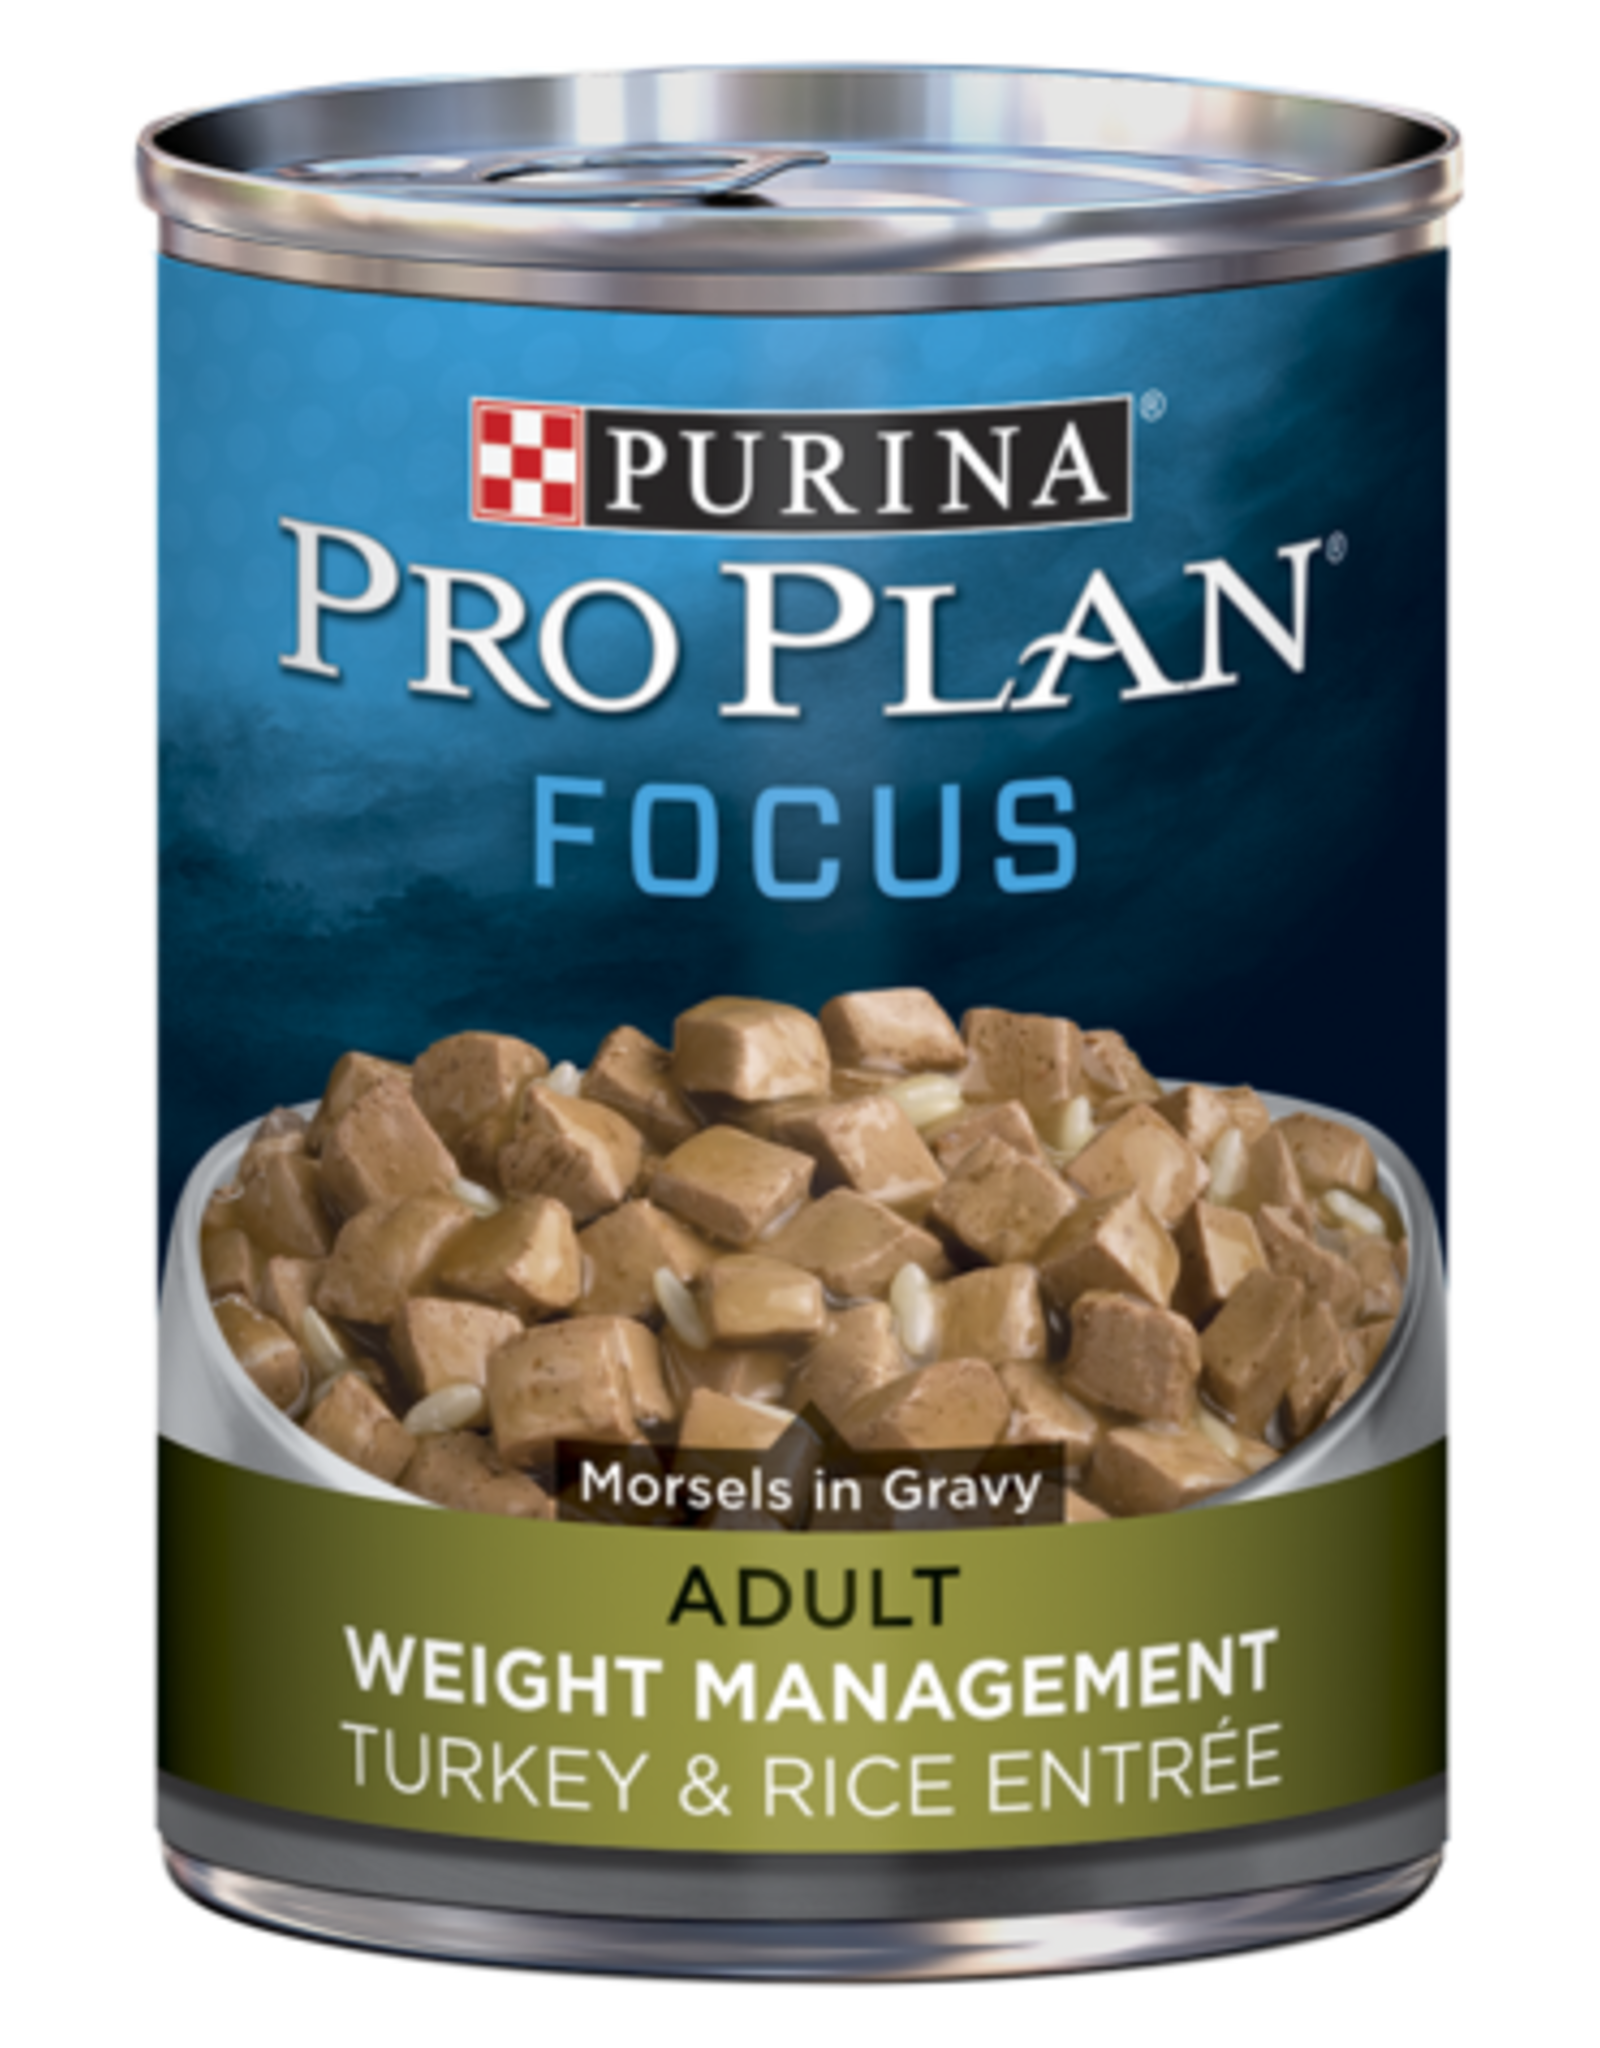 PRO PLAN DOG CAN WEIGHT MANAGEMENT TURKEY & RICE 13OZ CASE OF 12